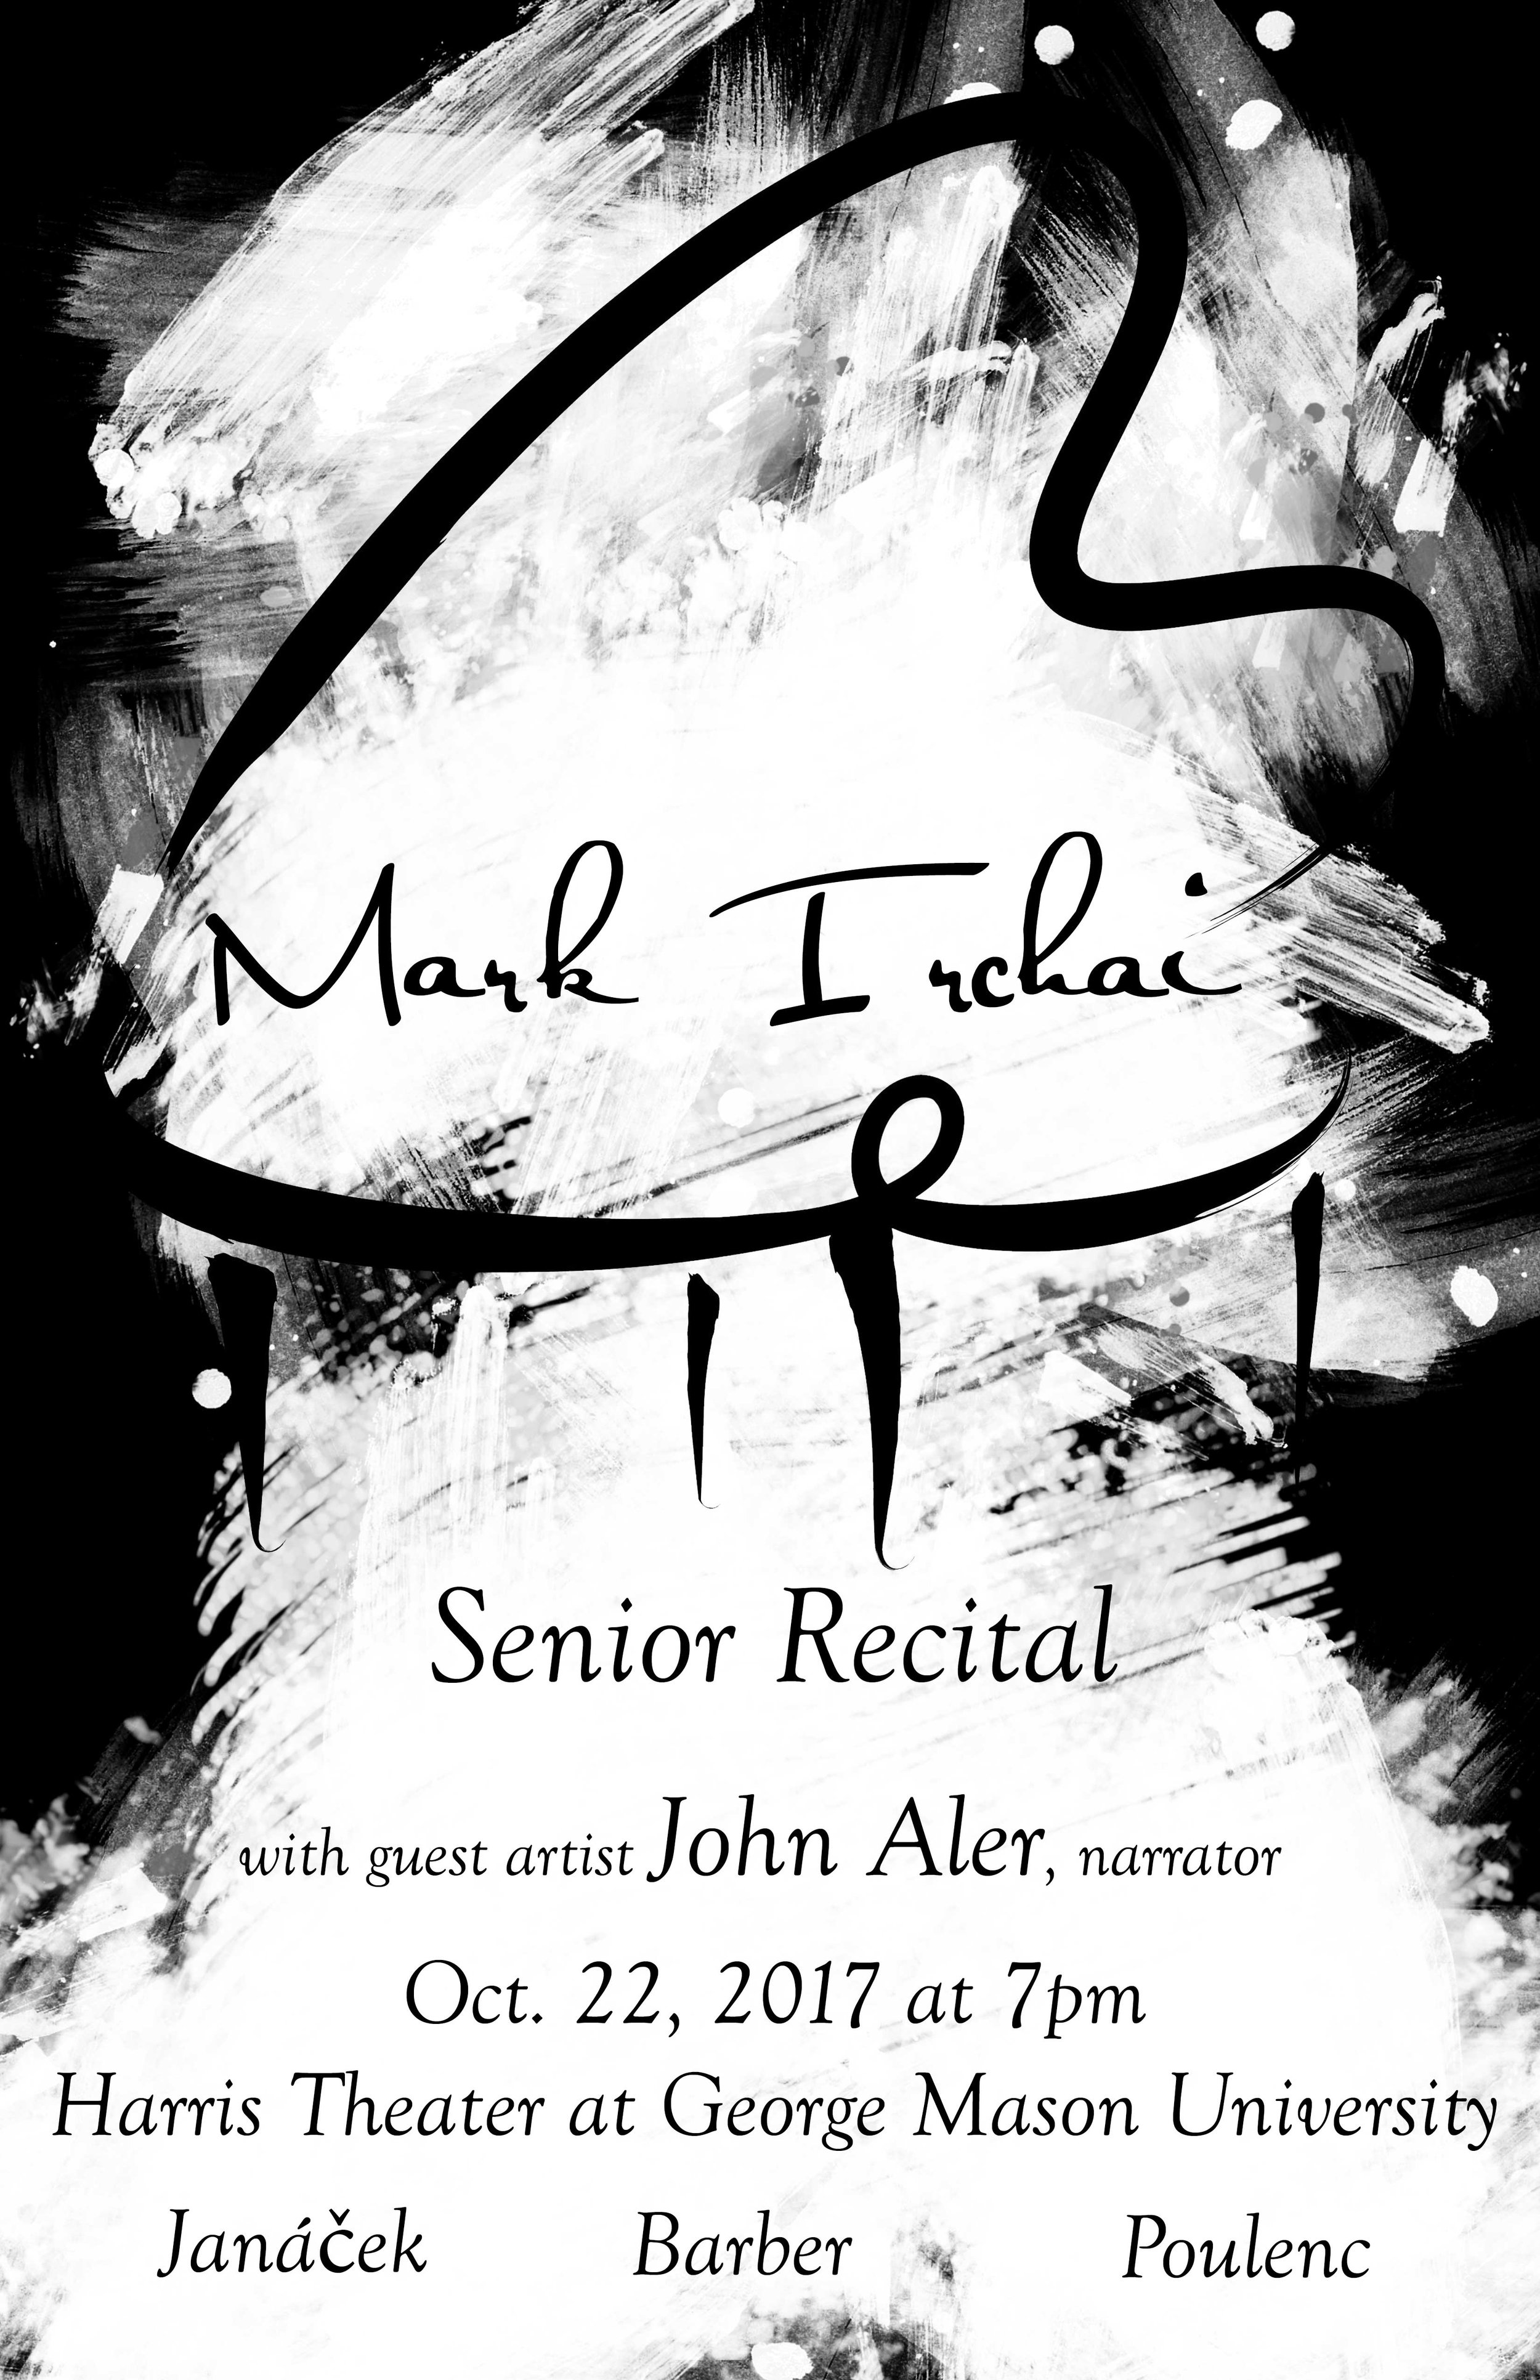 Join me... - ...for my senior recital at George Mason University! The program will include an appearance by guest narrator Professor John Aler. Admission is entirely free and open to the public.Program:Leoš Janáček - In the MistsSamuel Barber - Piano Sonata in E-flat minor, Op. 26Francois Poulenc - L'Histoire de Babar, FP 129, with guest narrator John Aler